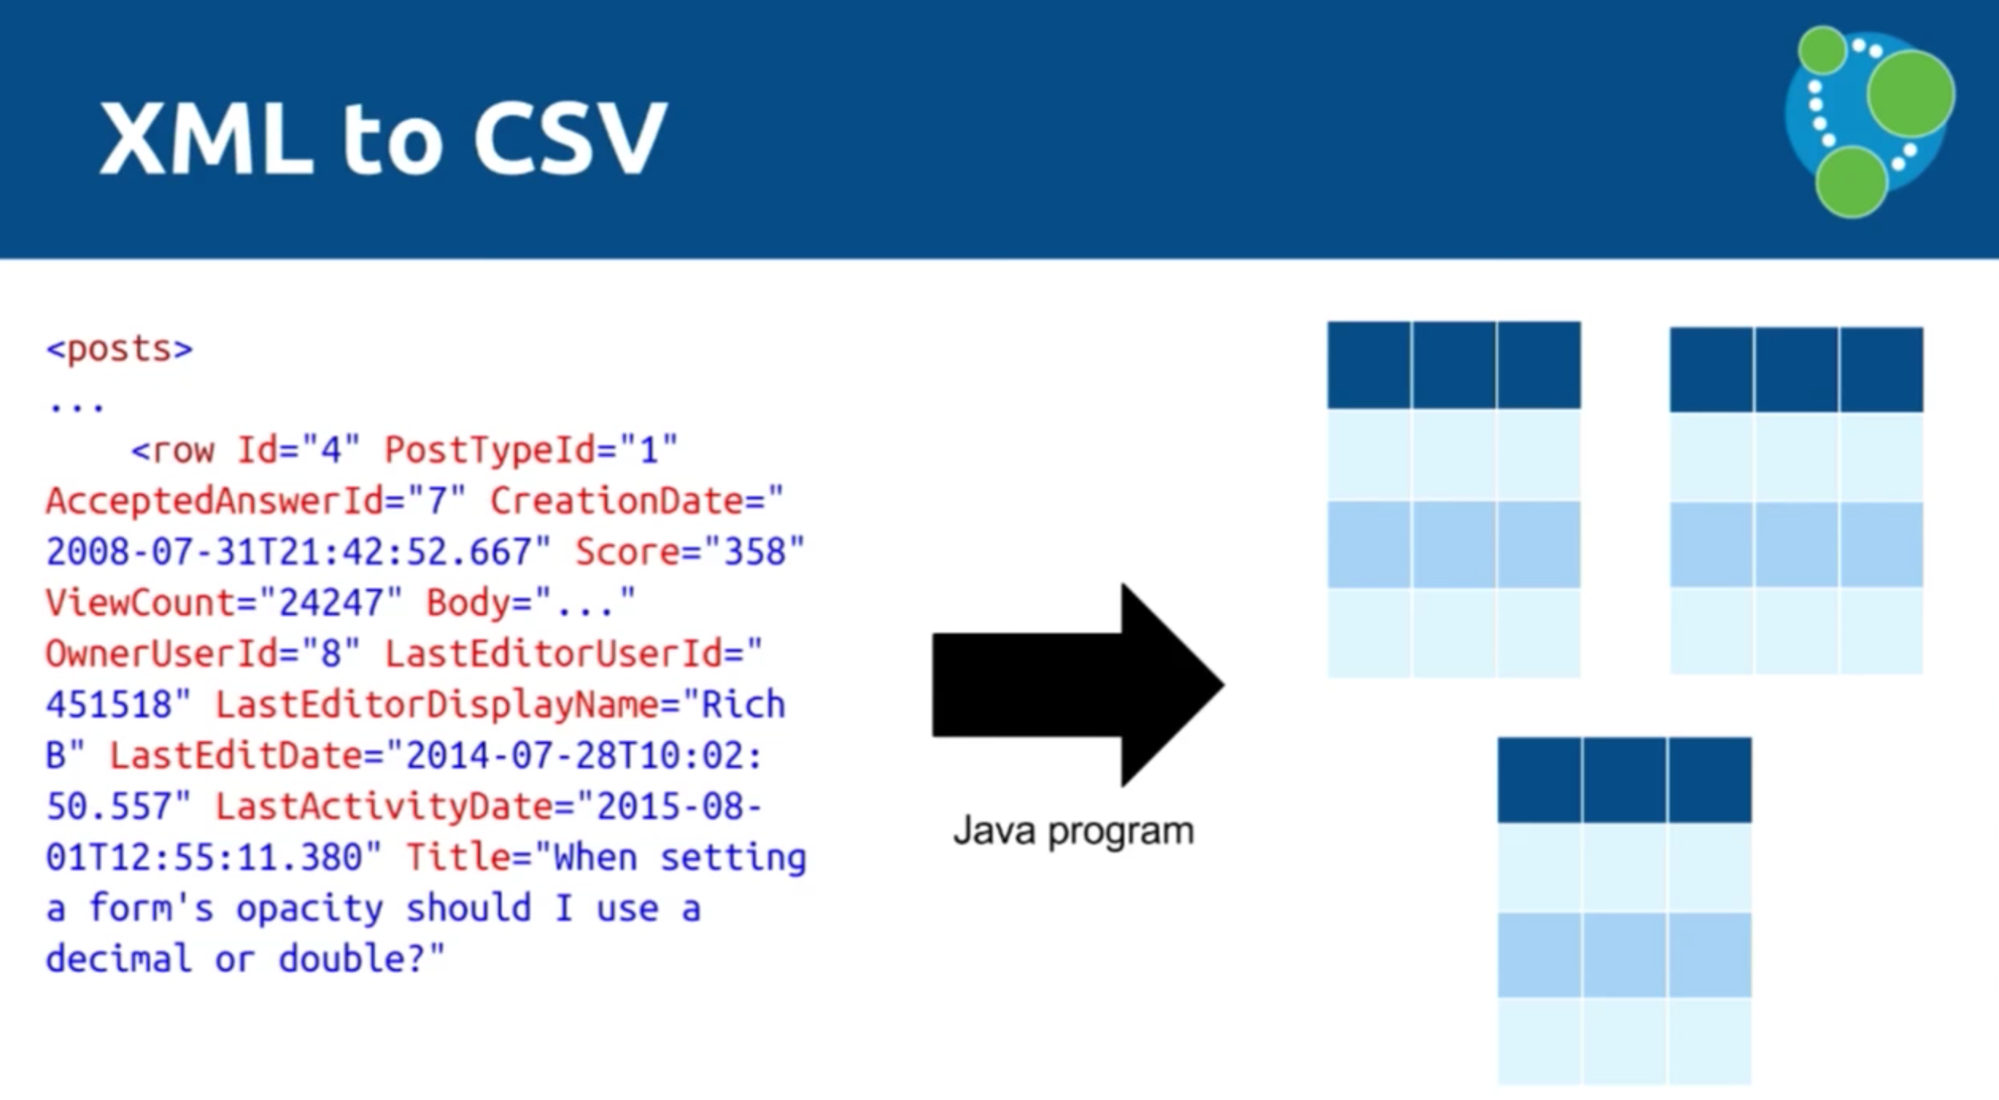 XML to CSV data conversion